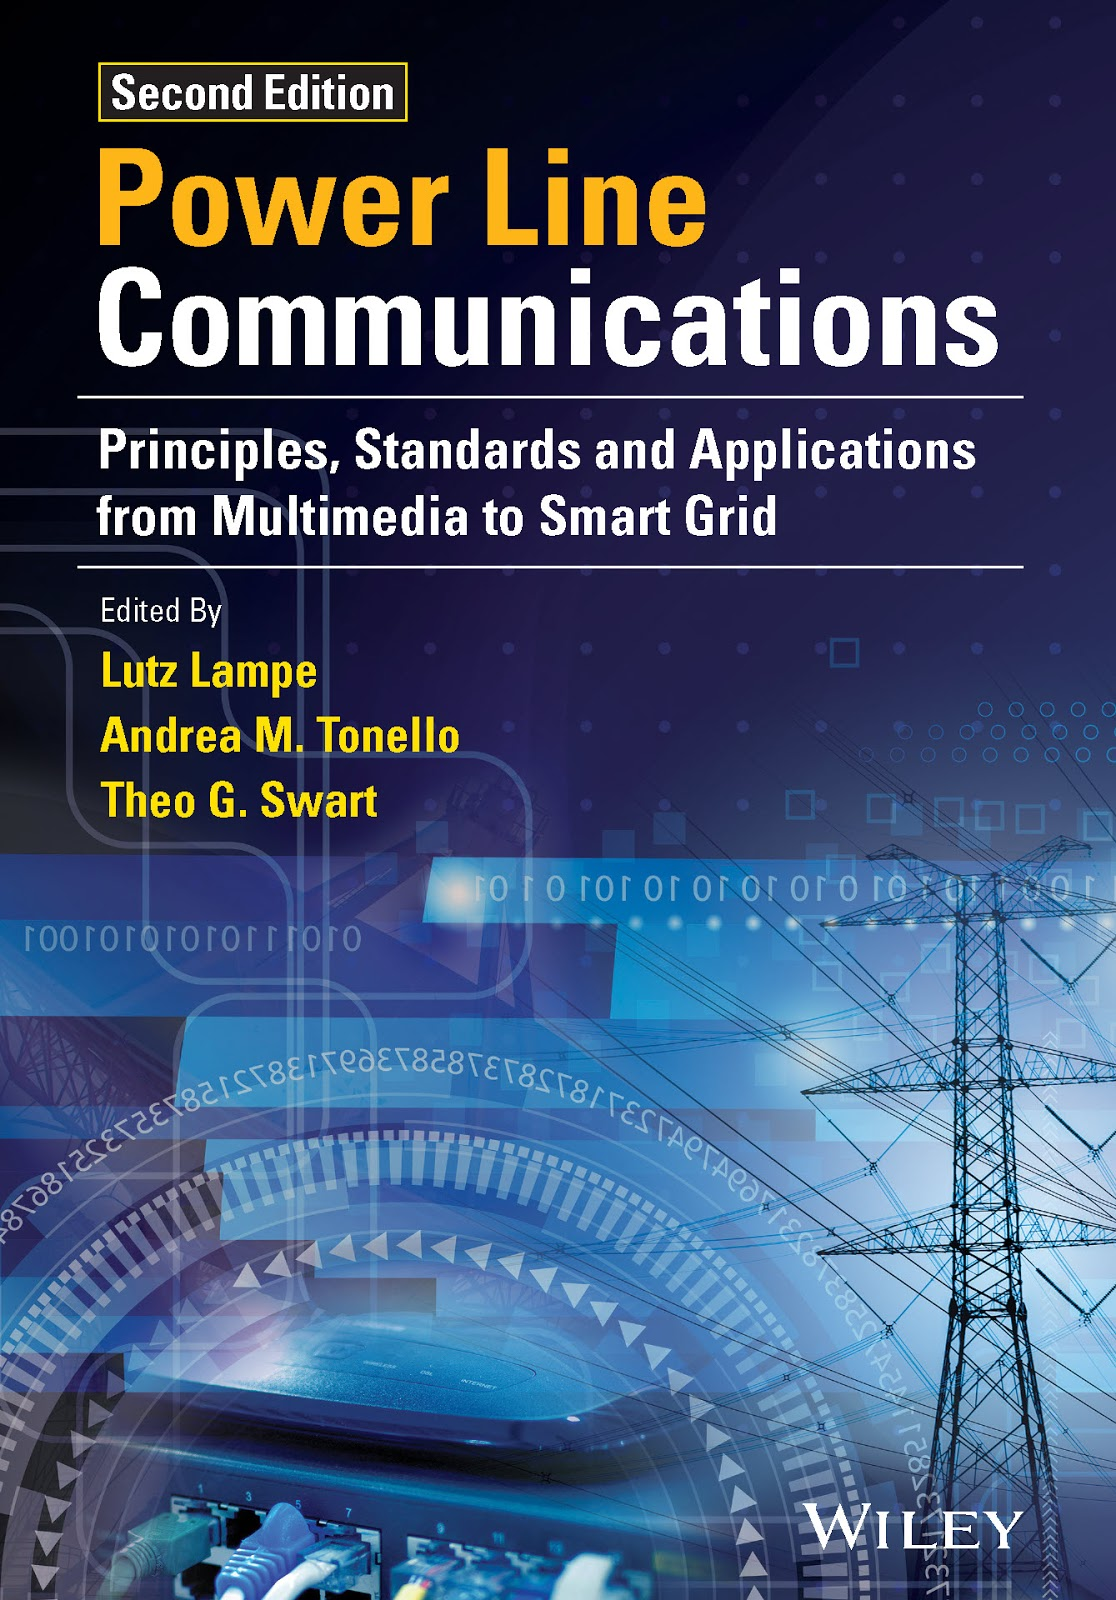 Engineering Books Wiring Reg Furthermore Recent Innovations And Changes Related To Channel Characterization Transmission Techniques Regulation Are Included In This Edition